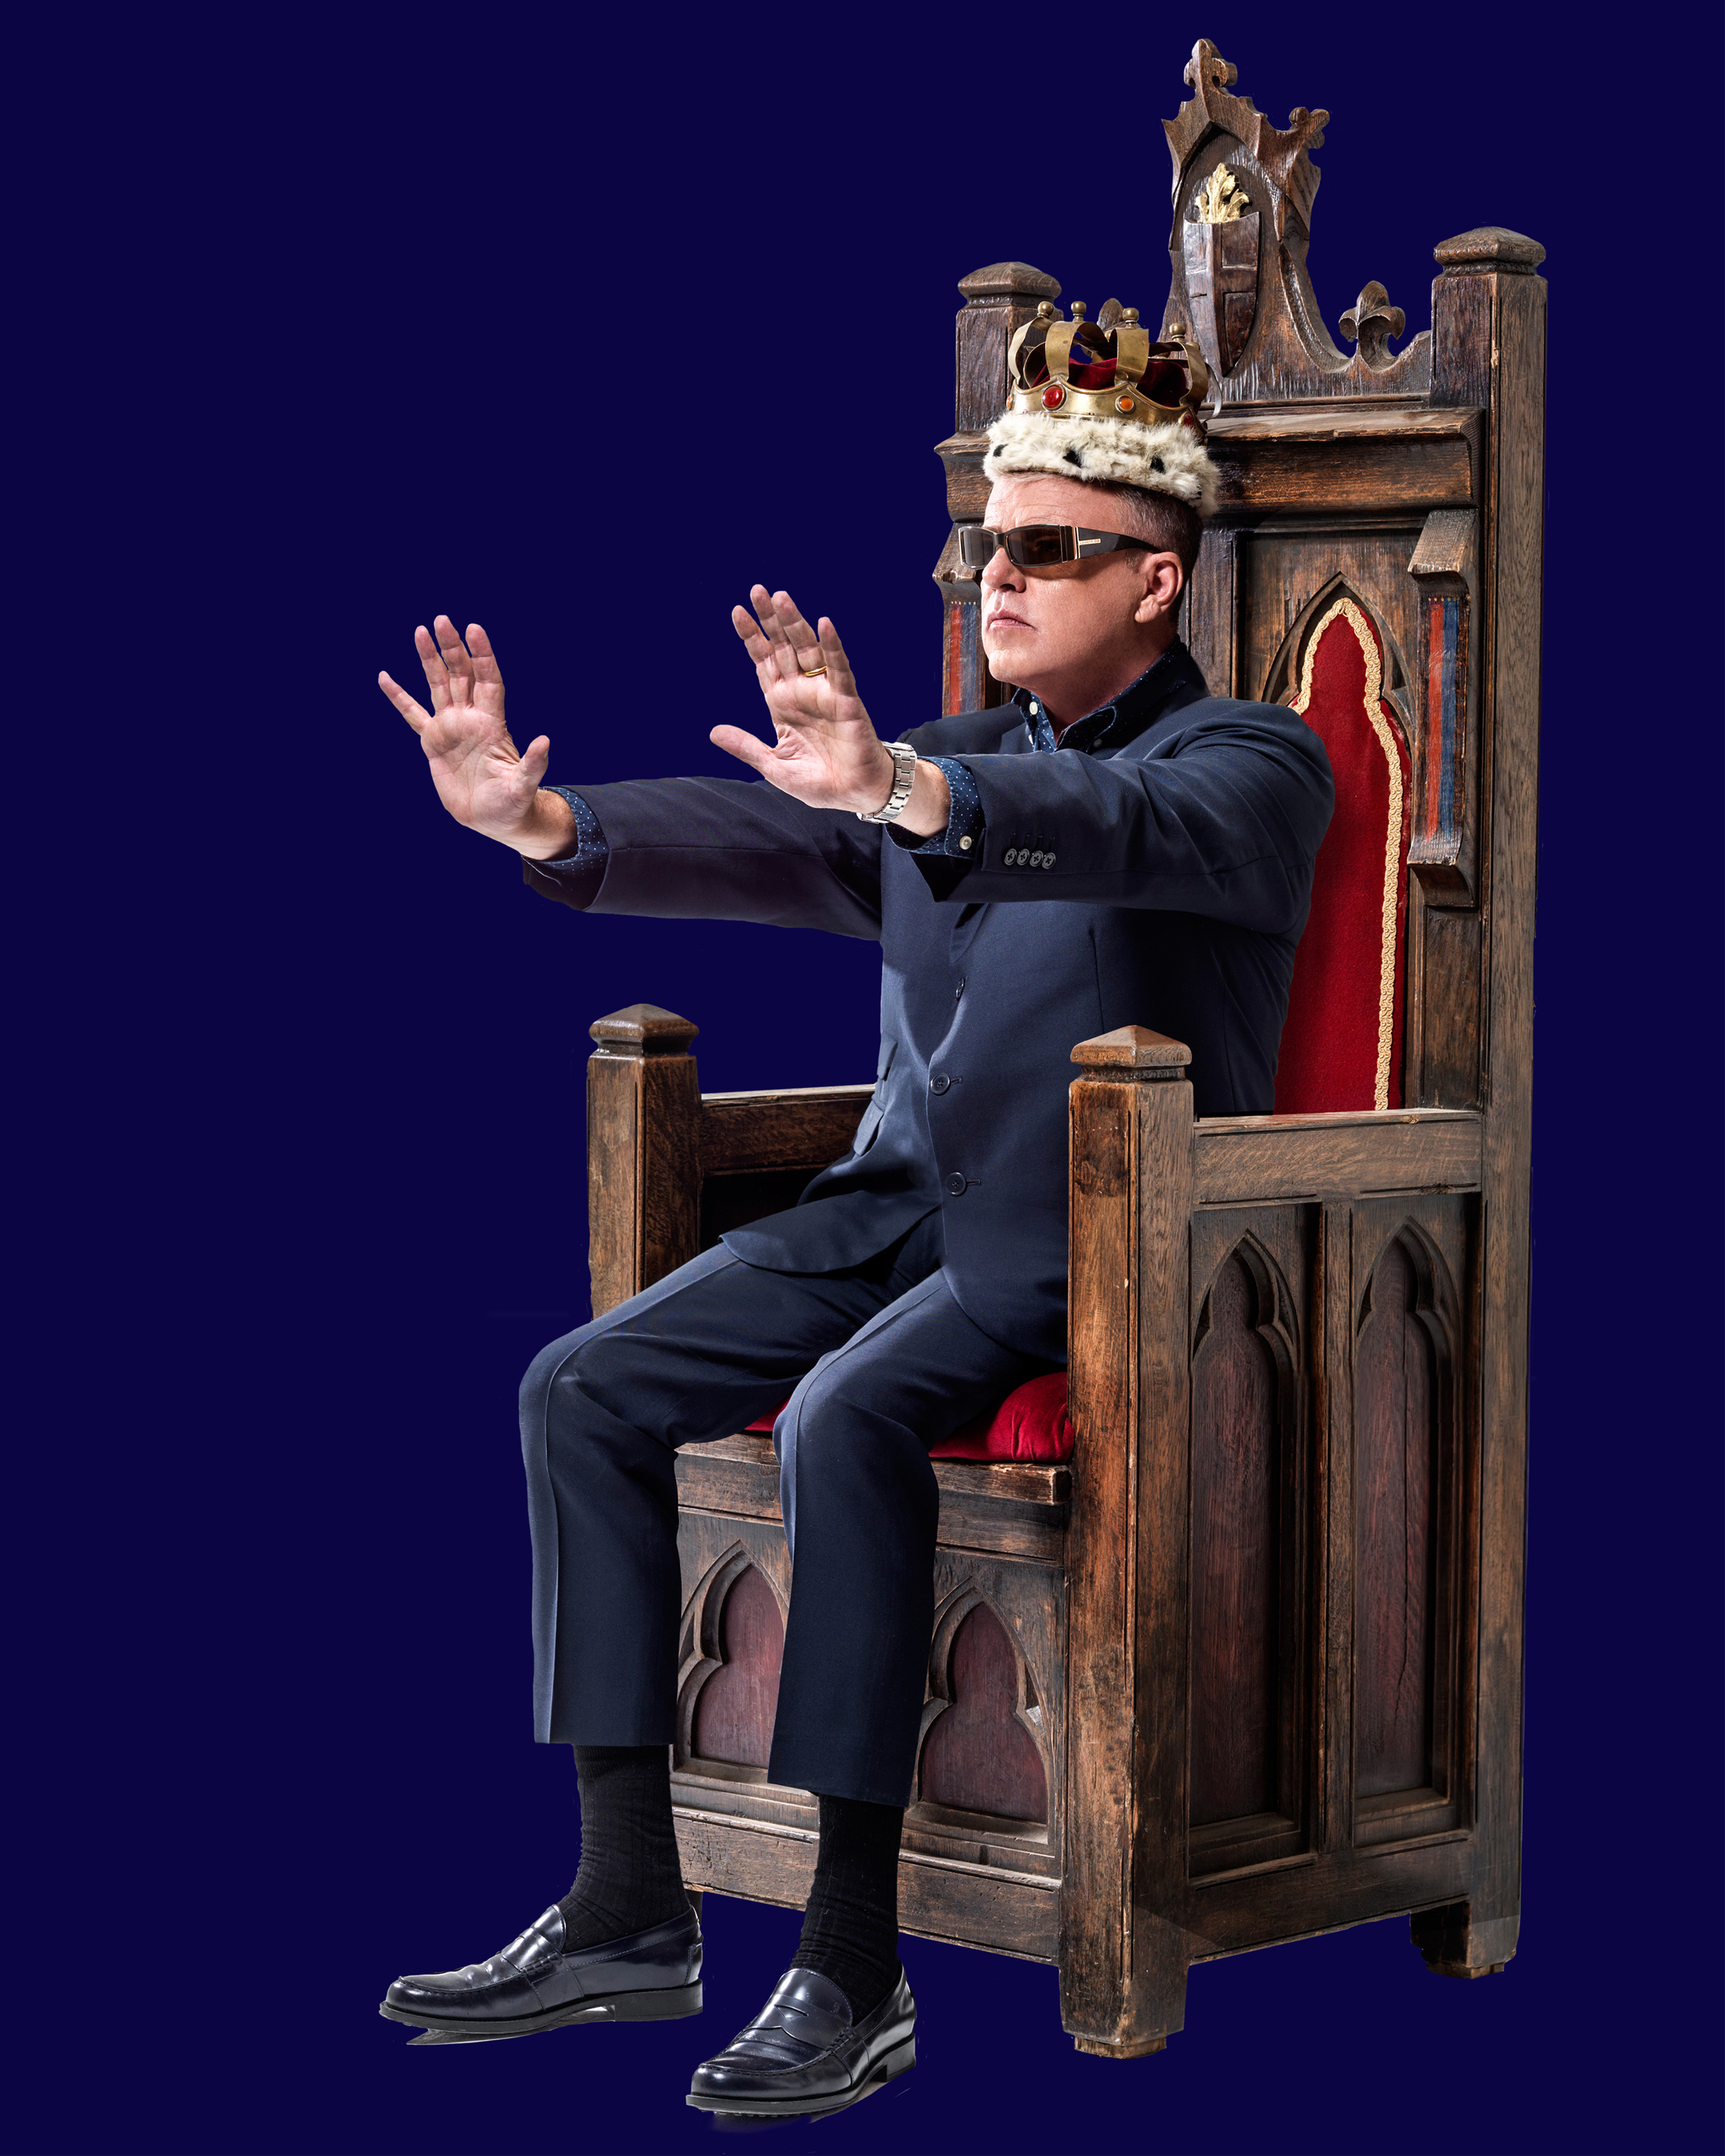 Madness singer Suggs will relate his life story at King's Hall in Ilkley